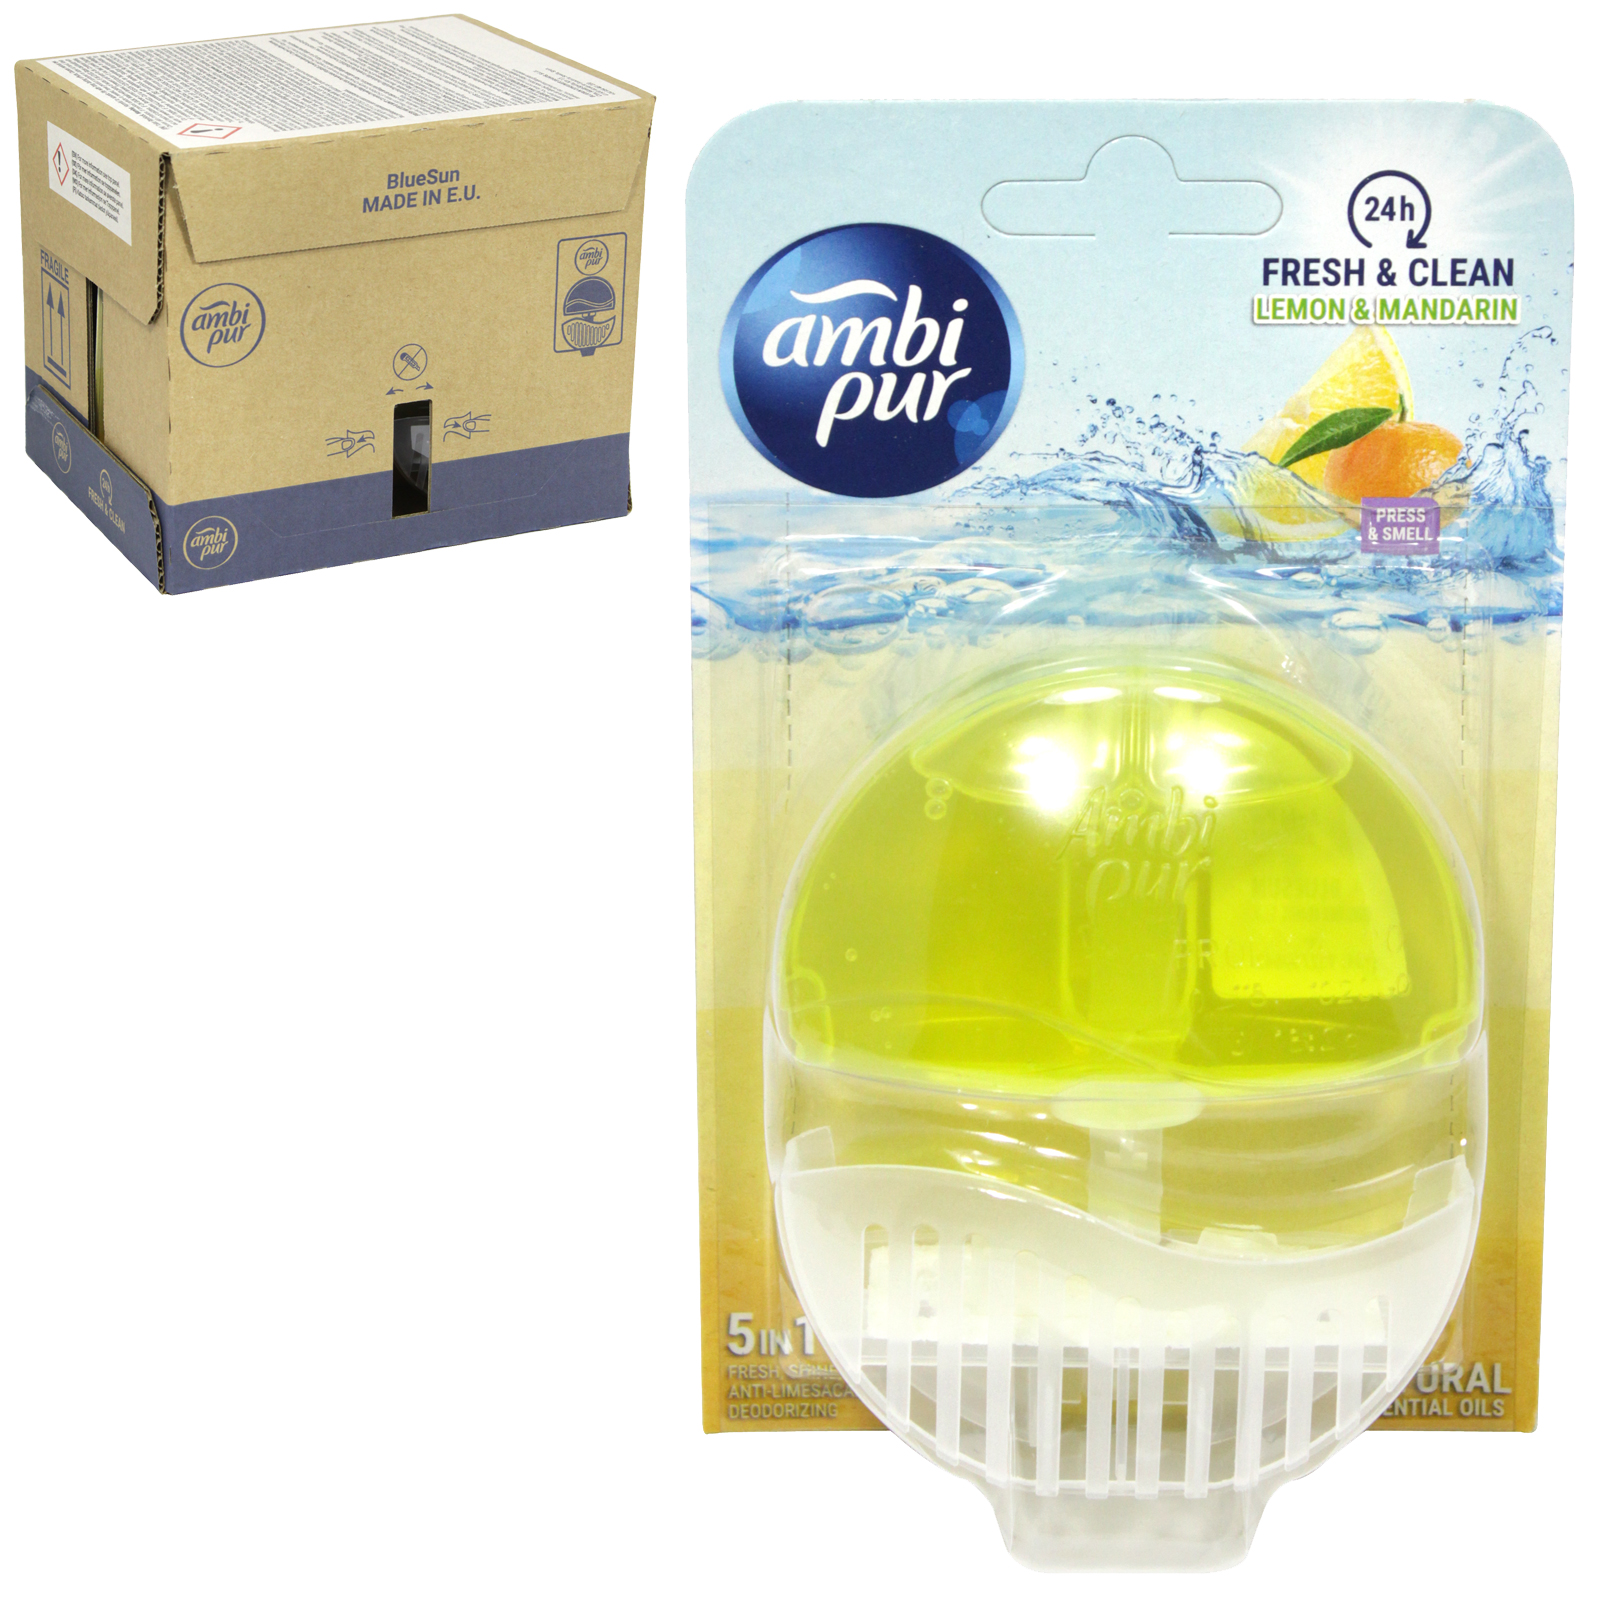 AMBI-PUR 24HR FRESH+CLEAN 5IN1 LIQUID RIM BLOCK 55ML LEMON+MANDARIN X6